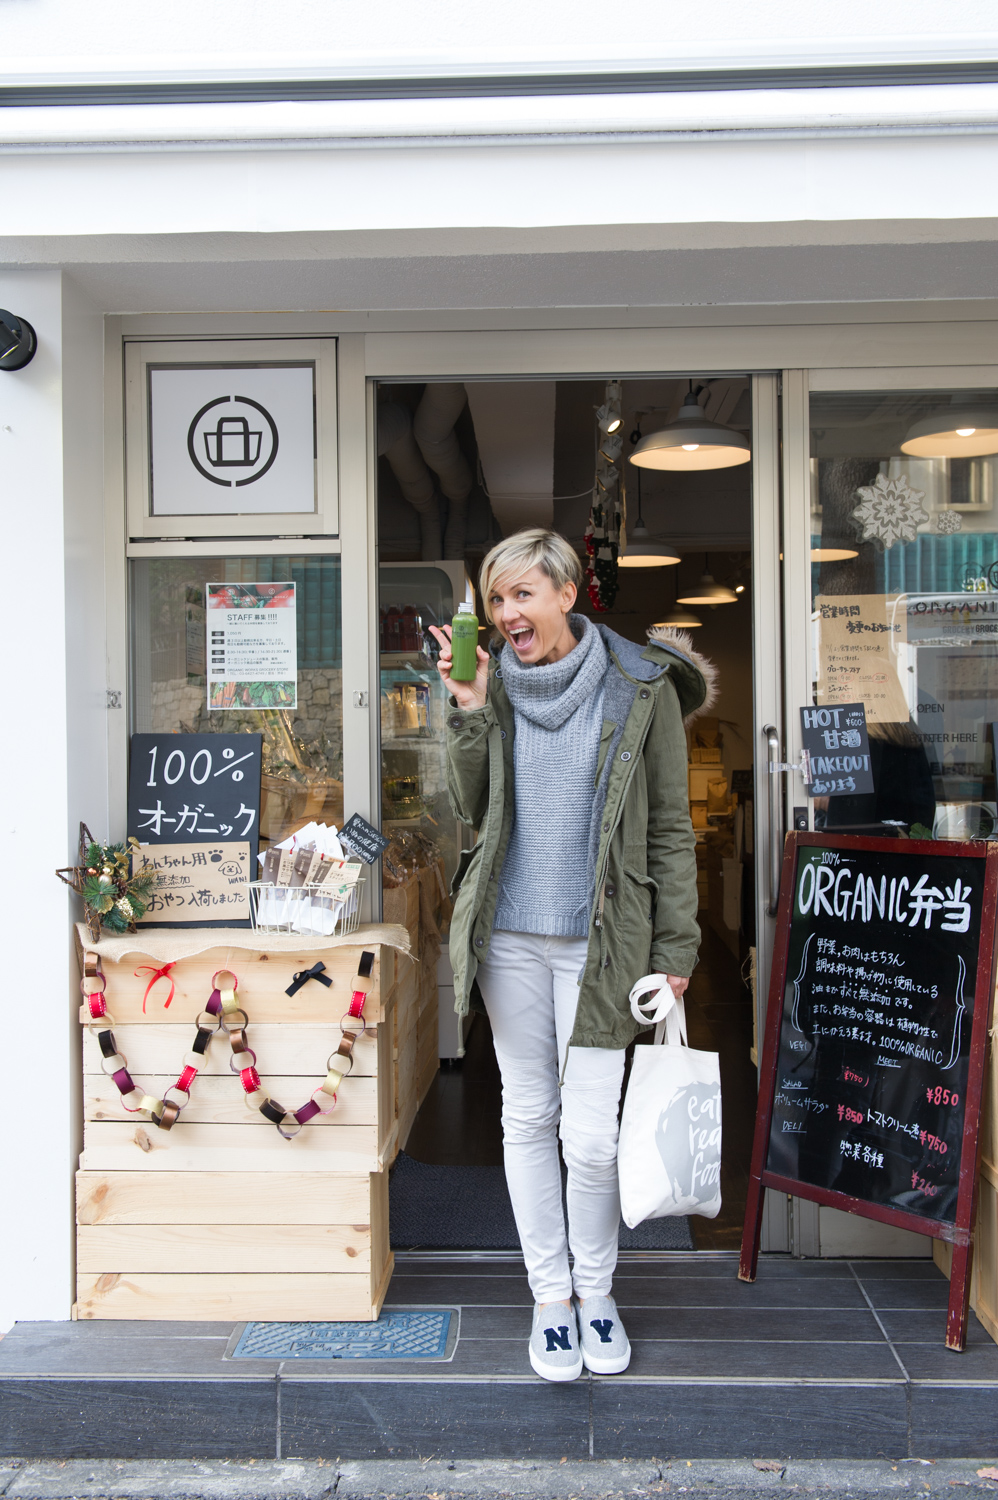 TRAVEL: Tokyo Part 1; A Vegan's Guide - Organic Works